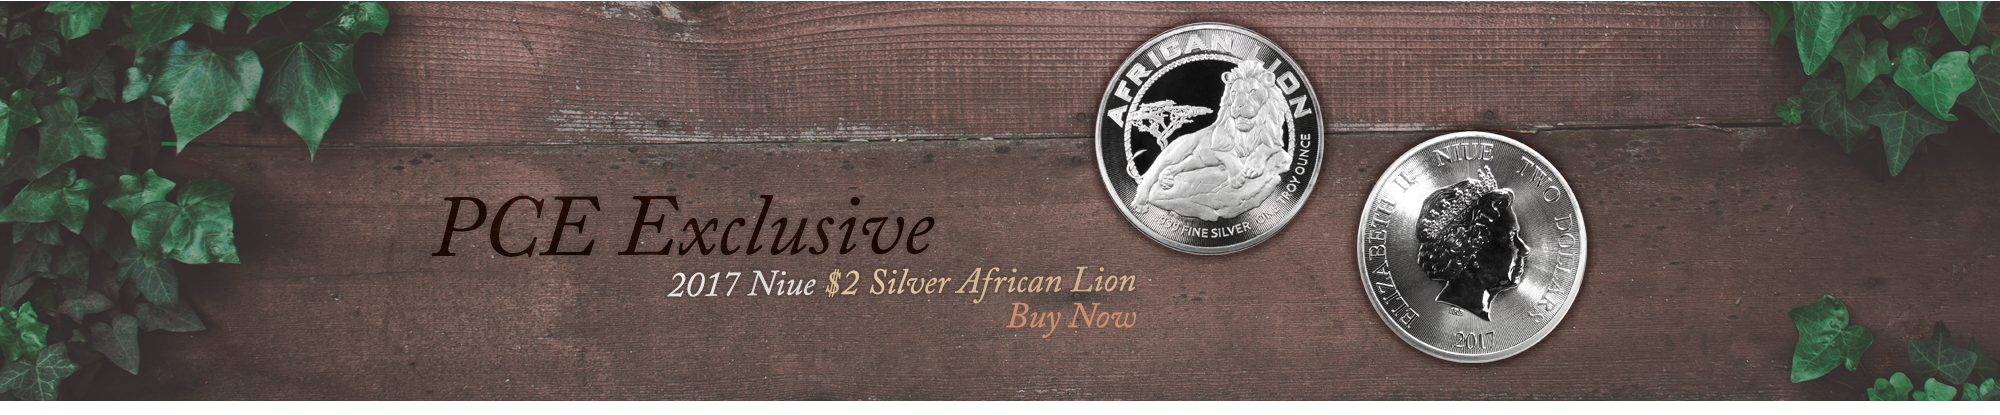 PCE Exclusive 2017 Niue $2 Silver African Lion